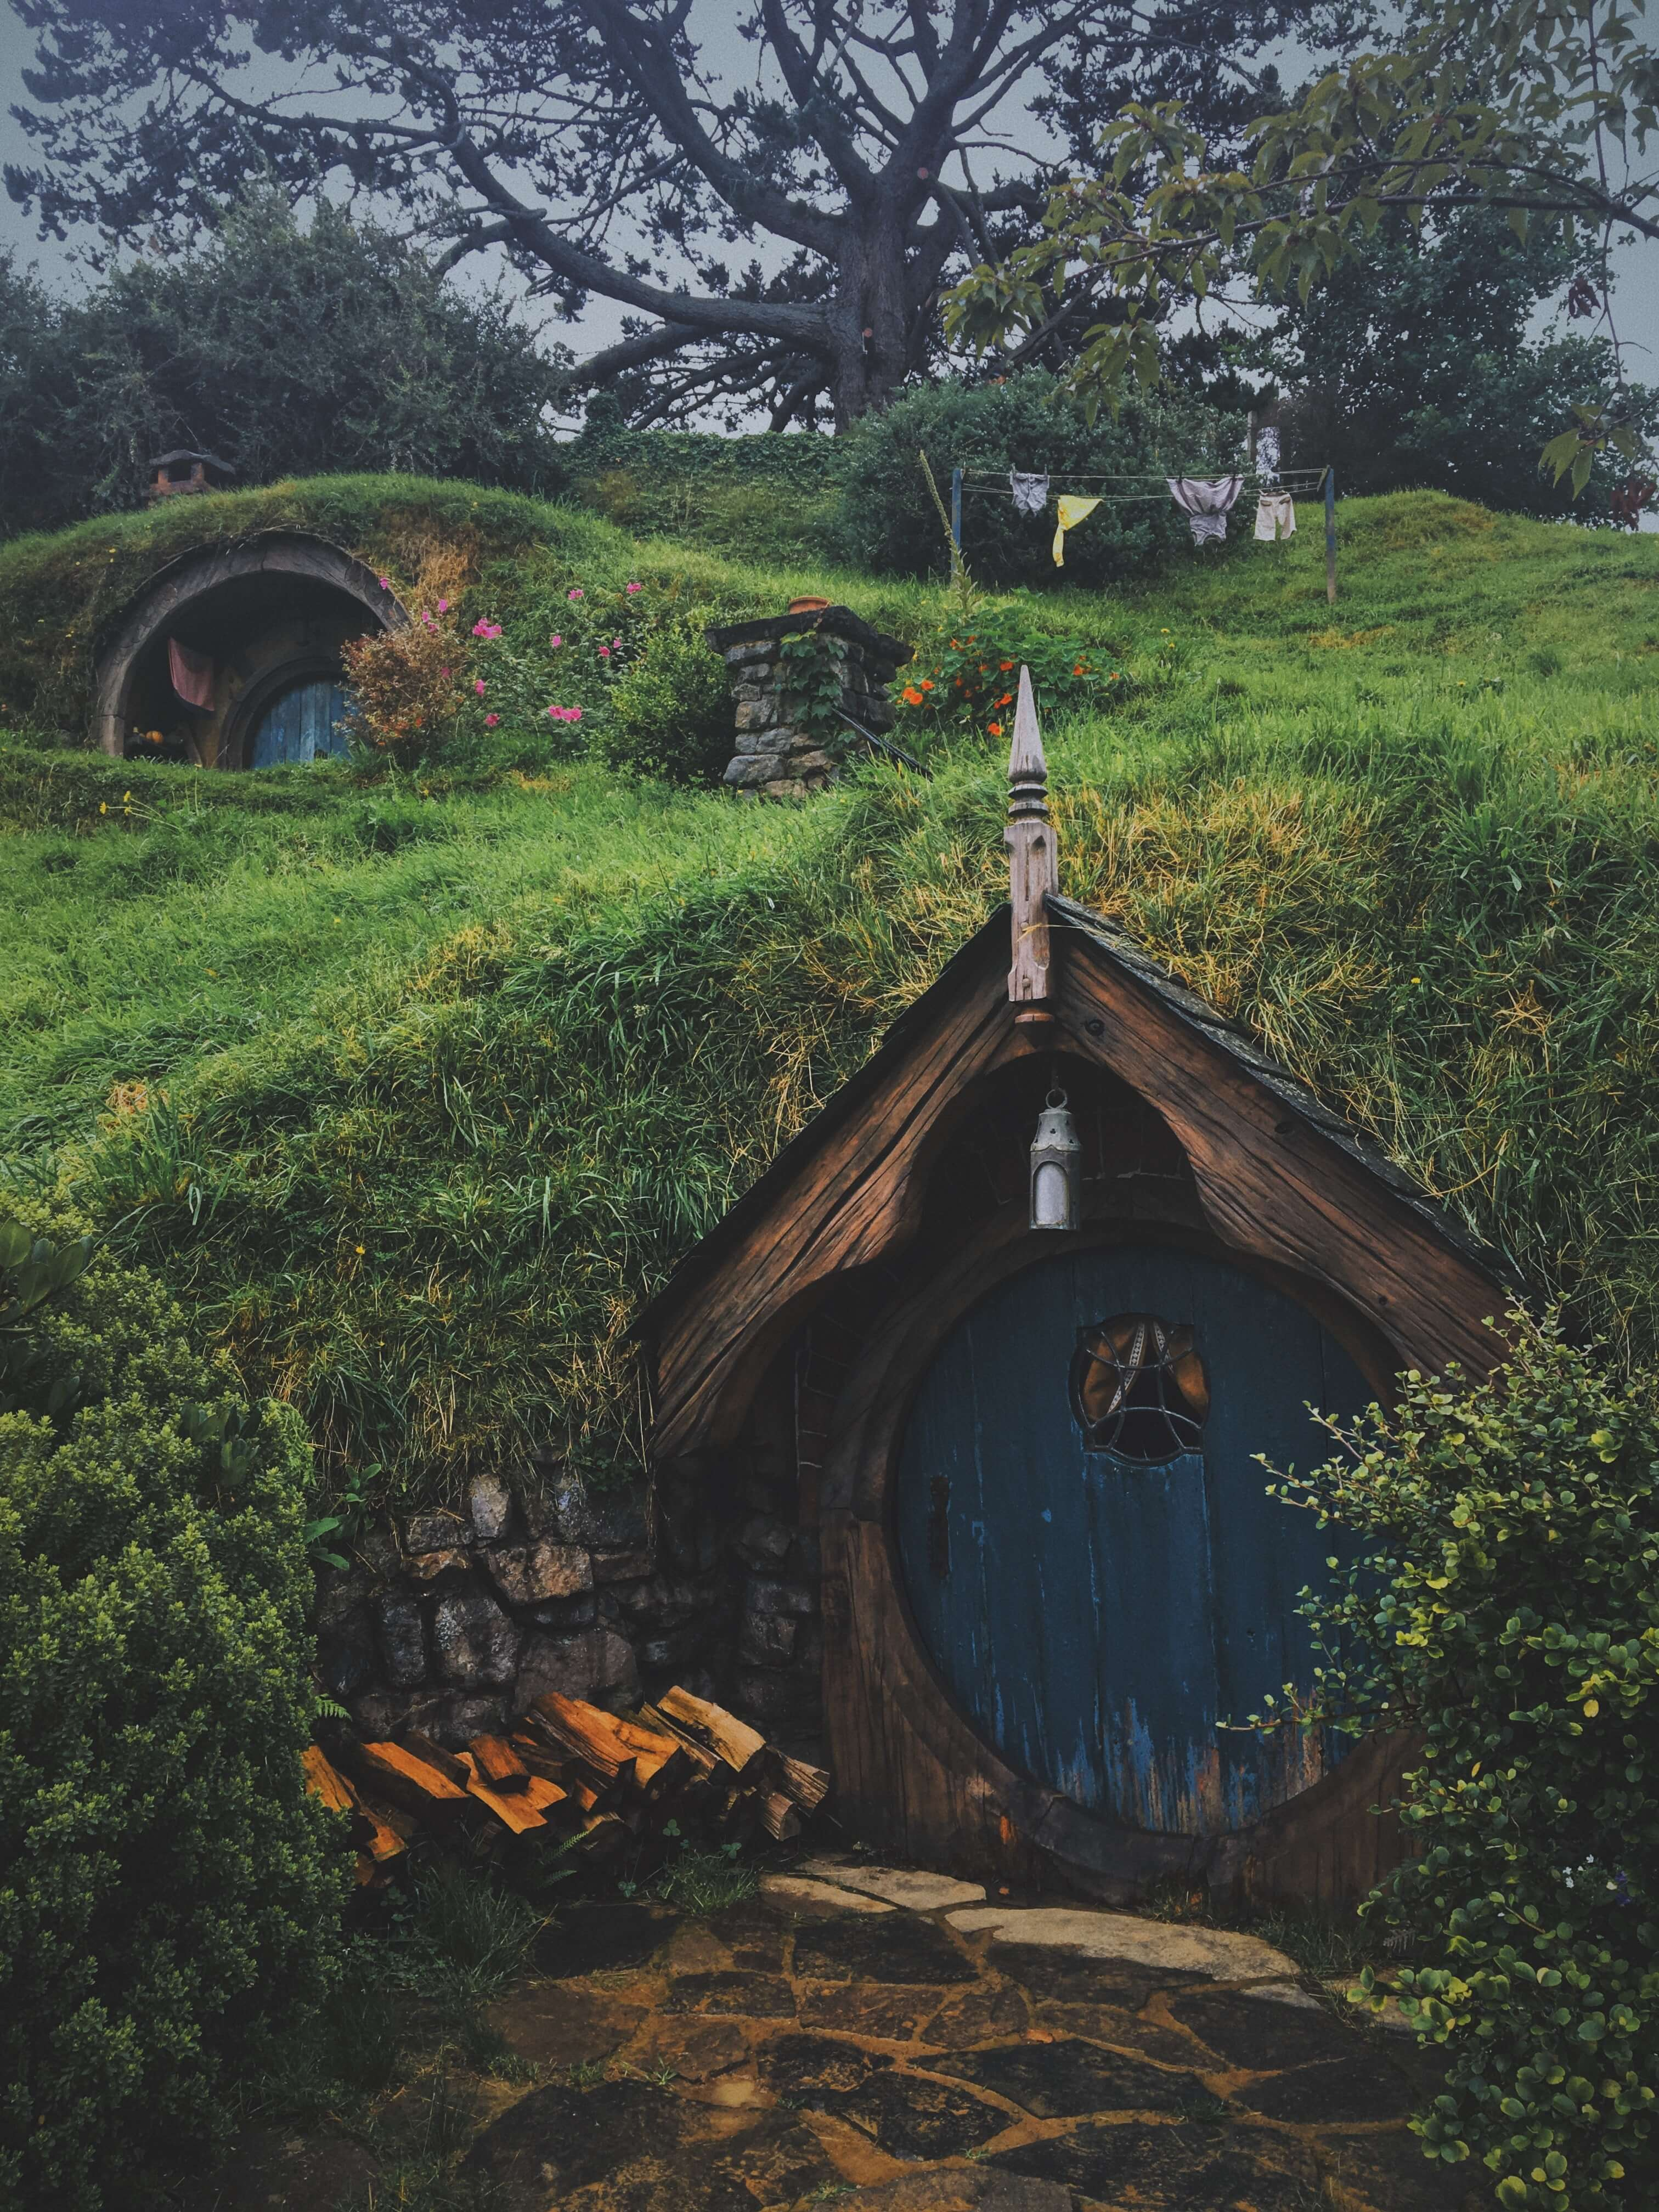 hobbit sets in New Zealand